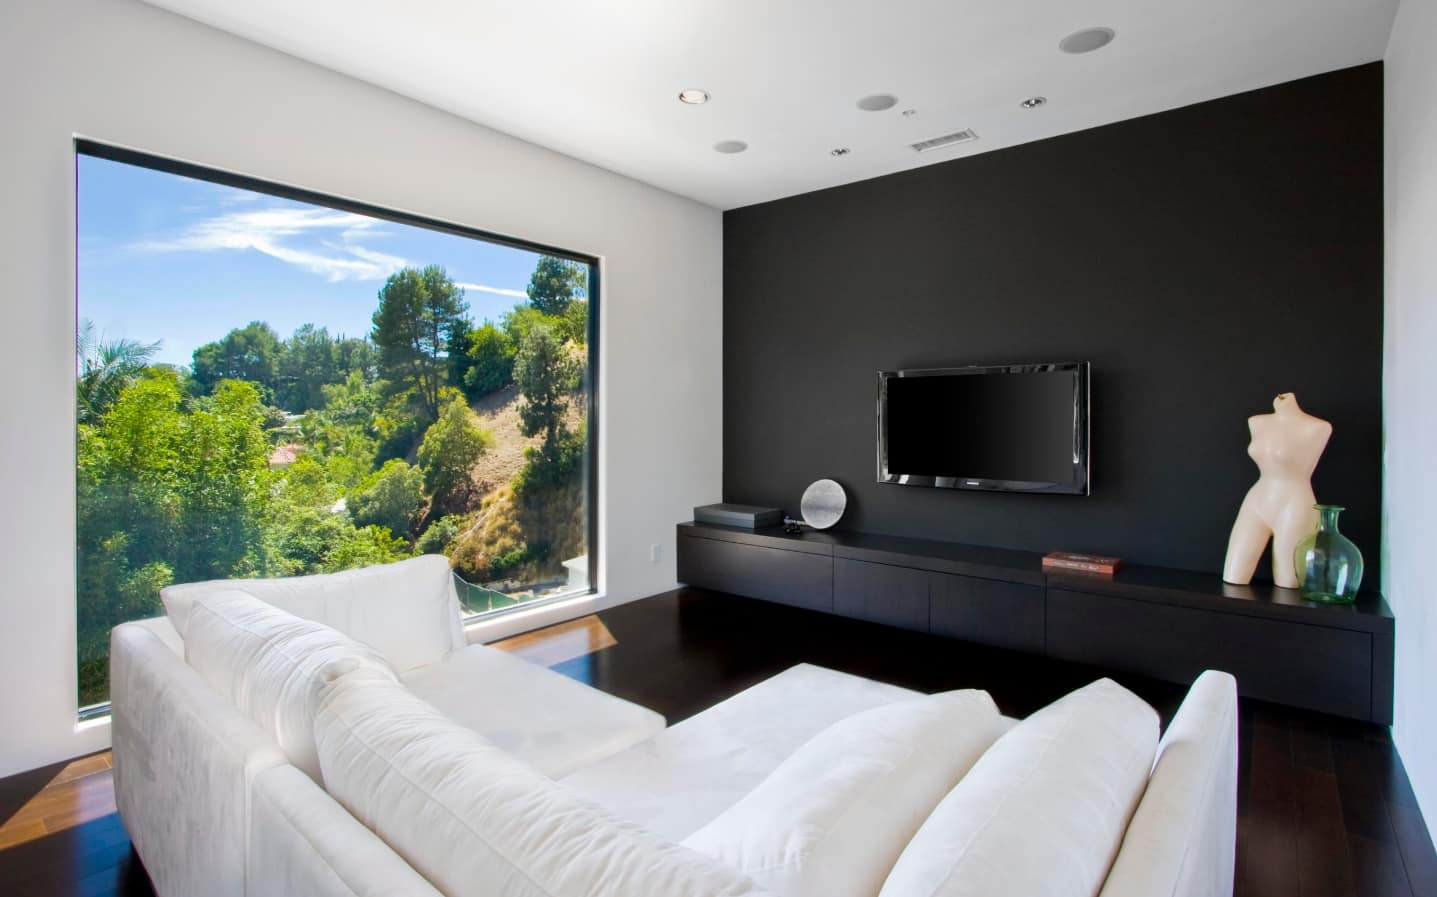 Breaking Stereotypes with Black Accent Wall Living Room Decoration. Panoramic window, black functional wall and white angular sofa for modern space